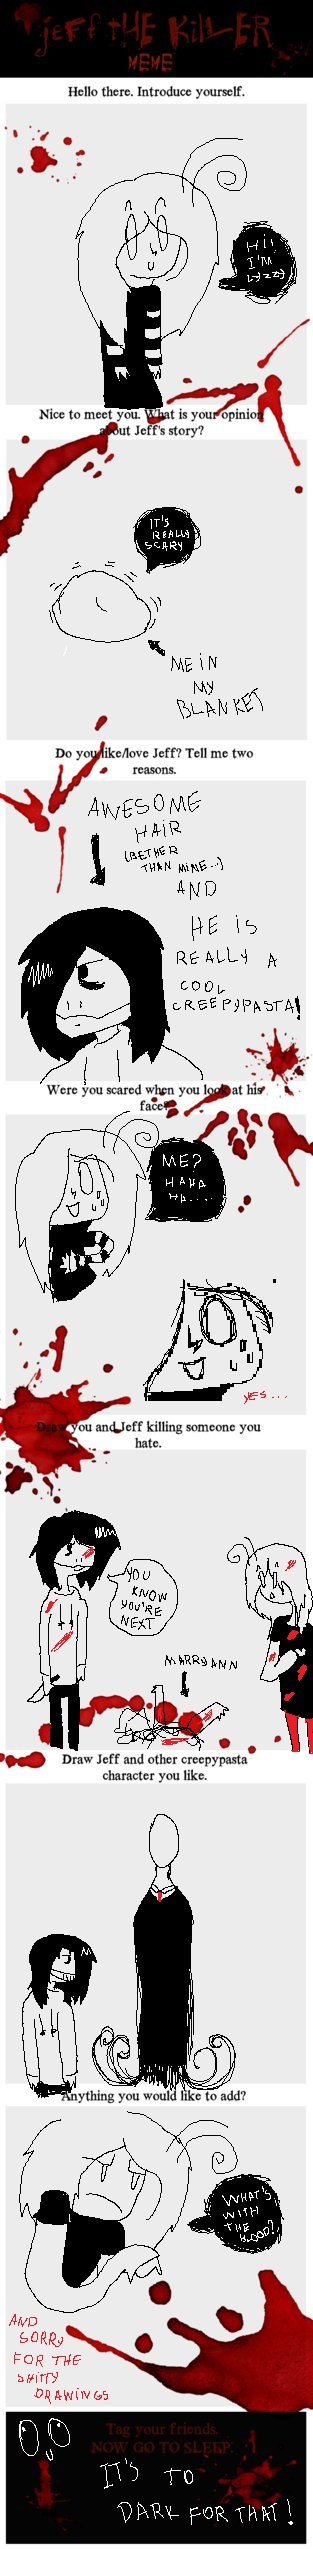 Yay Jeff the killer meme!!!! by Call-Them-Back